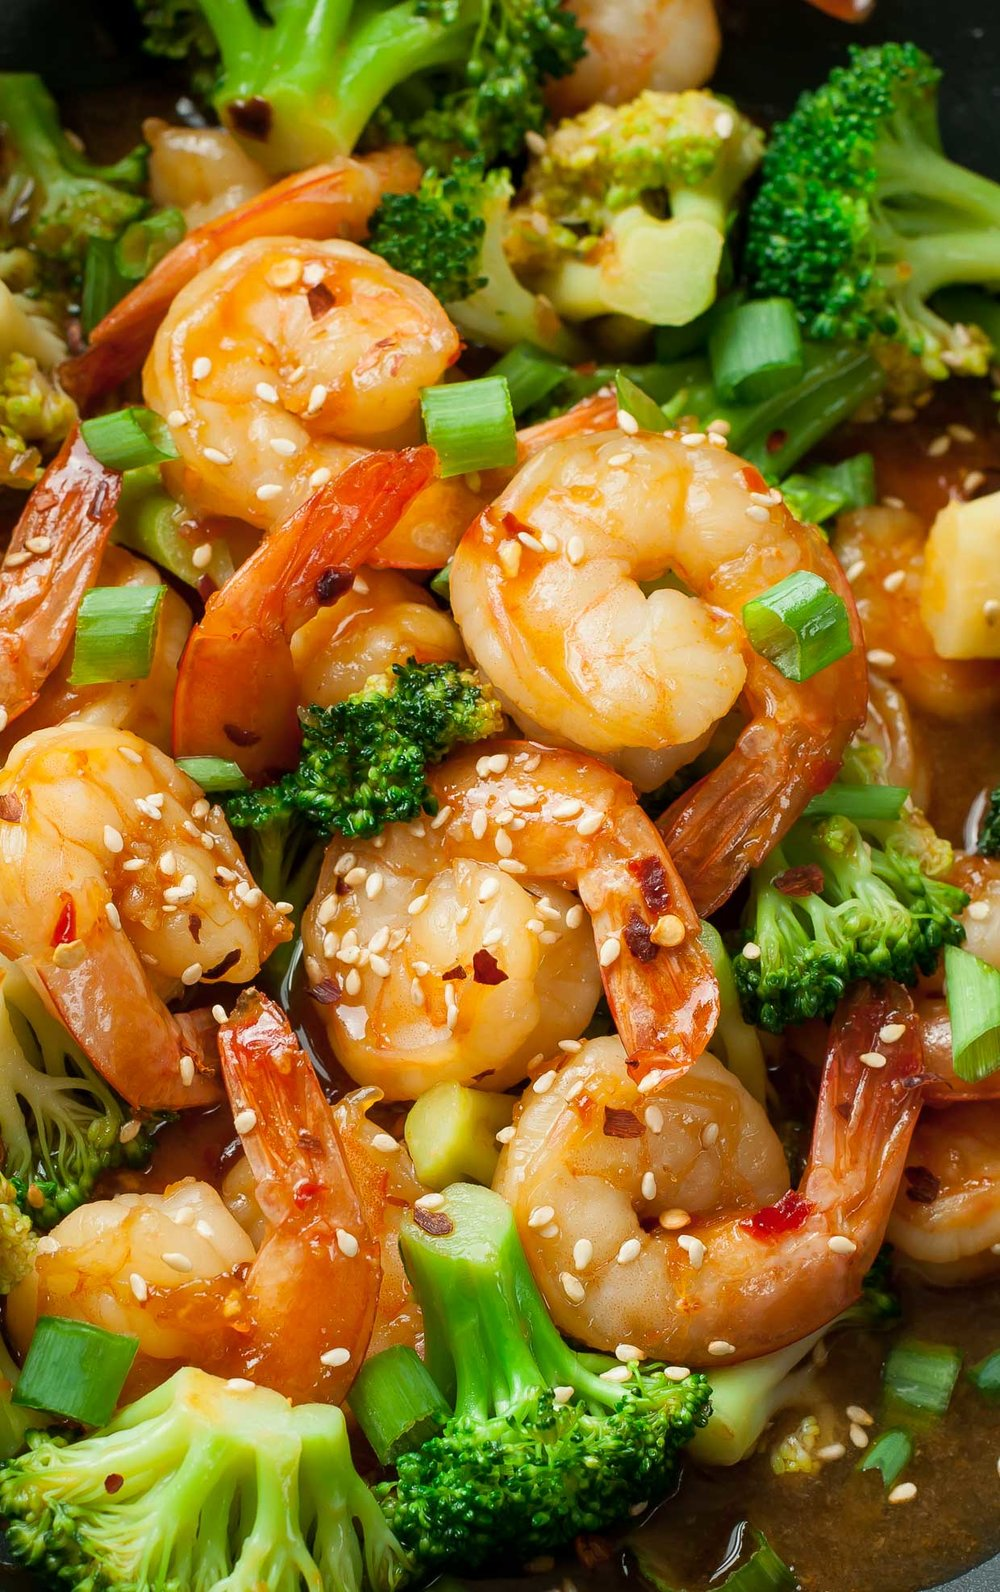 Spicy Szechuan Shrimp and Broccoli Stir-fry